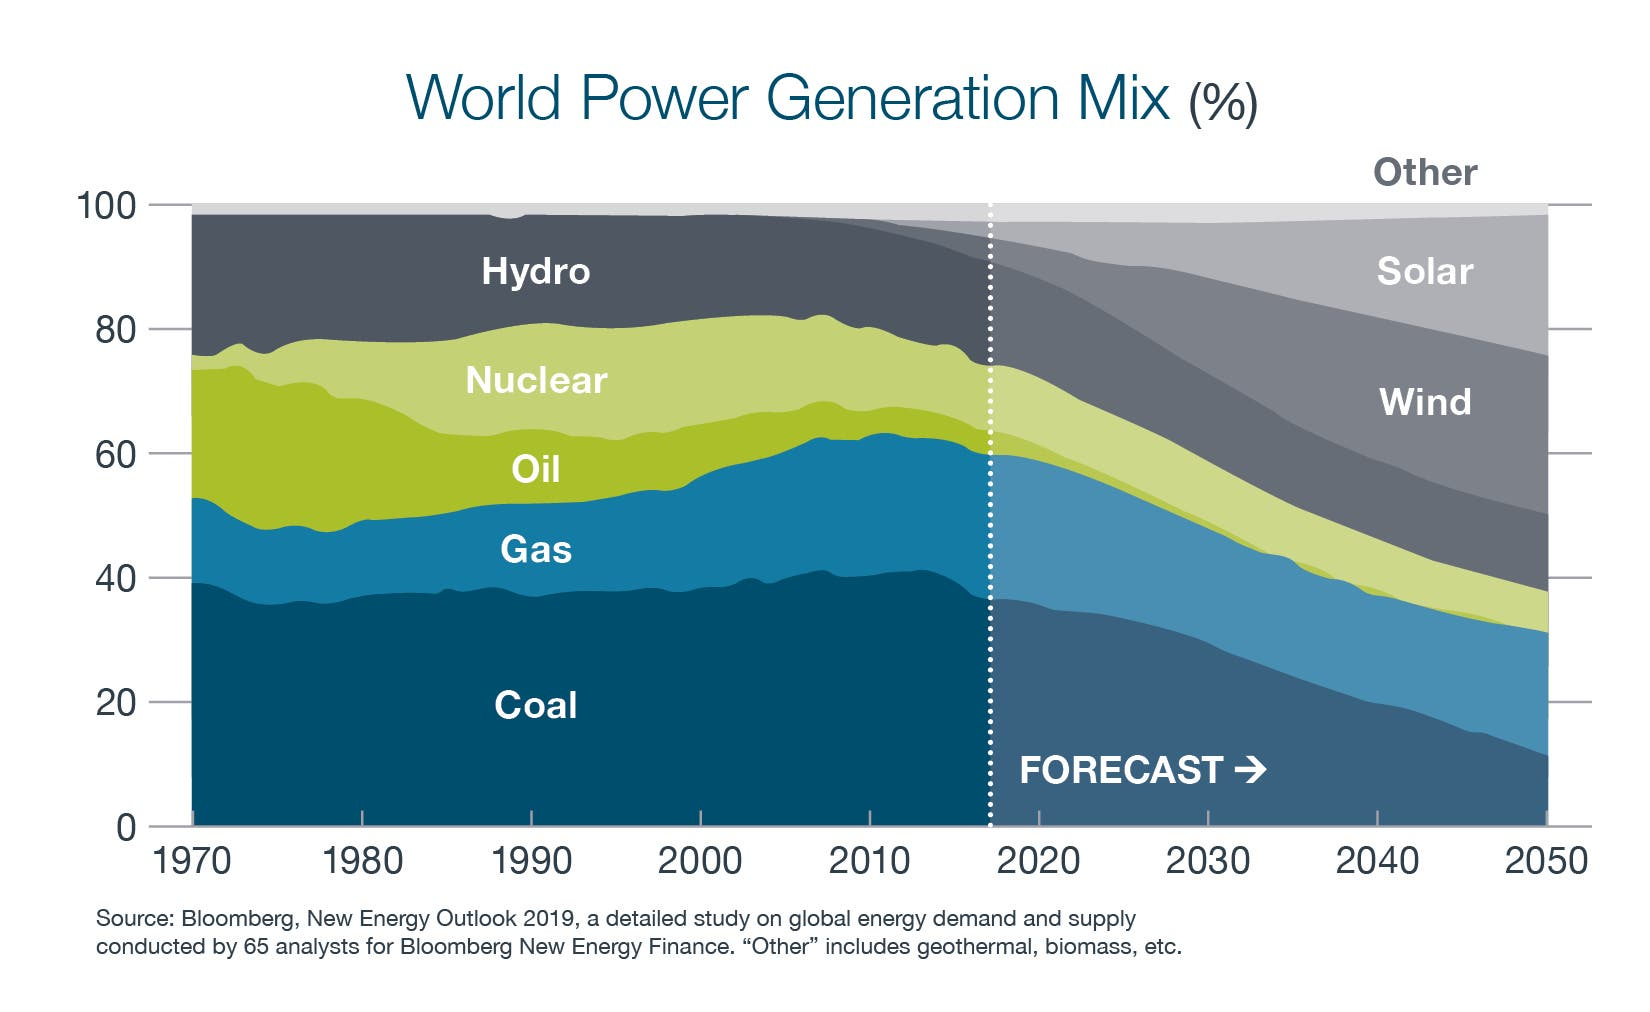 Graph showing the world power generation mix- Blue, Green, and Grey colors represent Coal, Gas, Oil, Nuclear, and Hydro - The forecast predicts by 2050 to have more solar and wind and a decrease in all other sectors